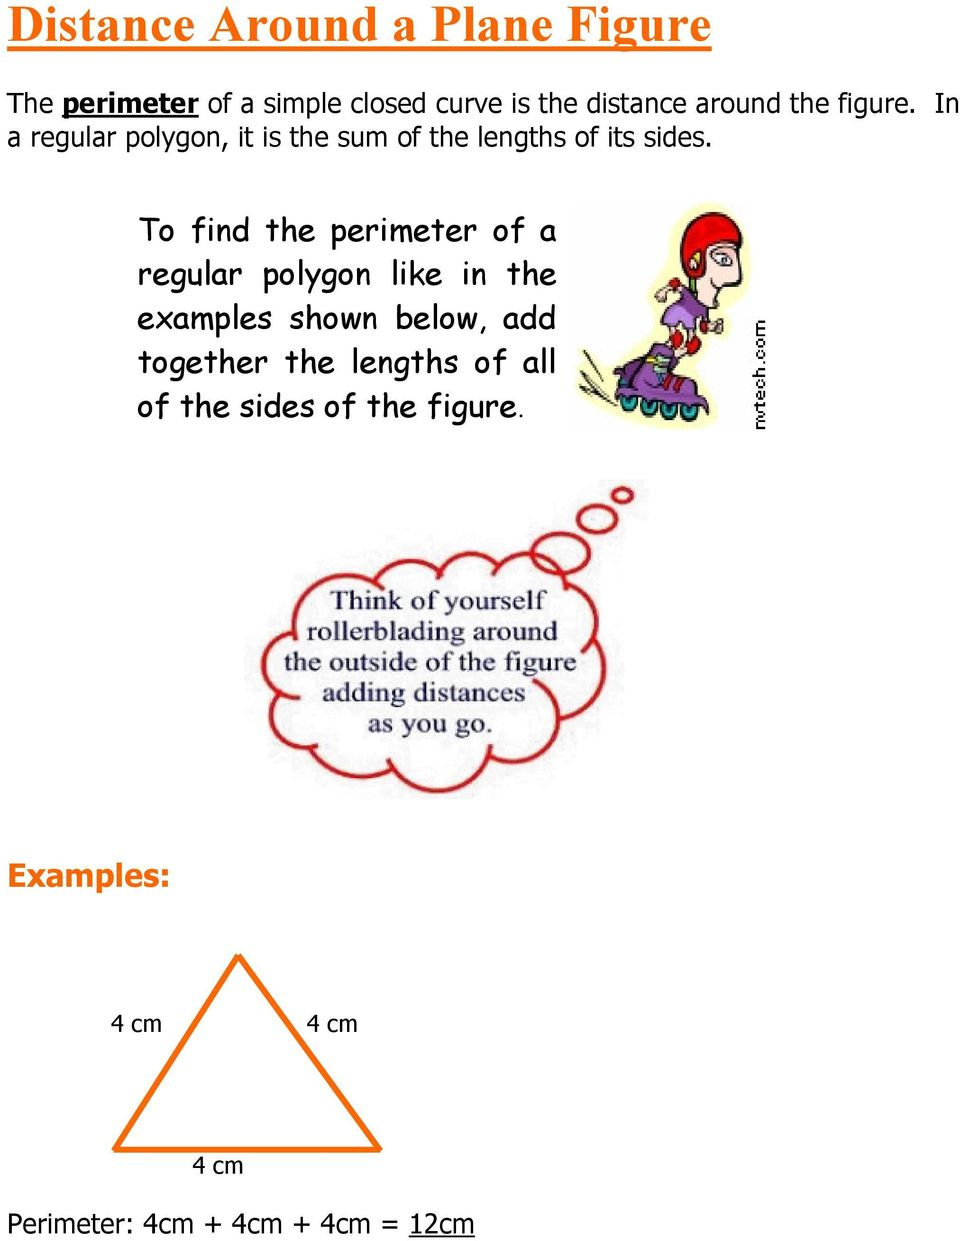 To find the perimeter of a regular polygon like in the examples shown below, add together